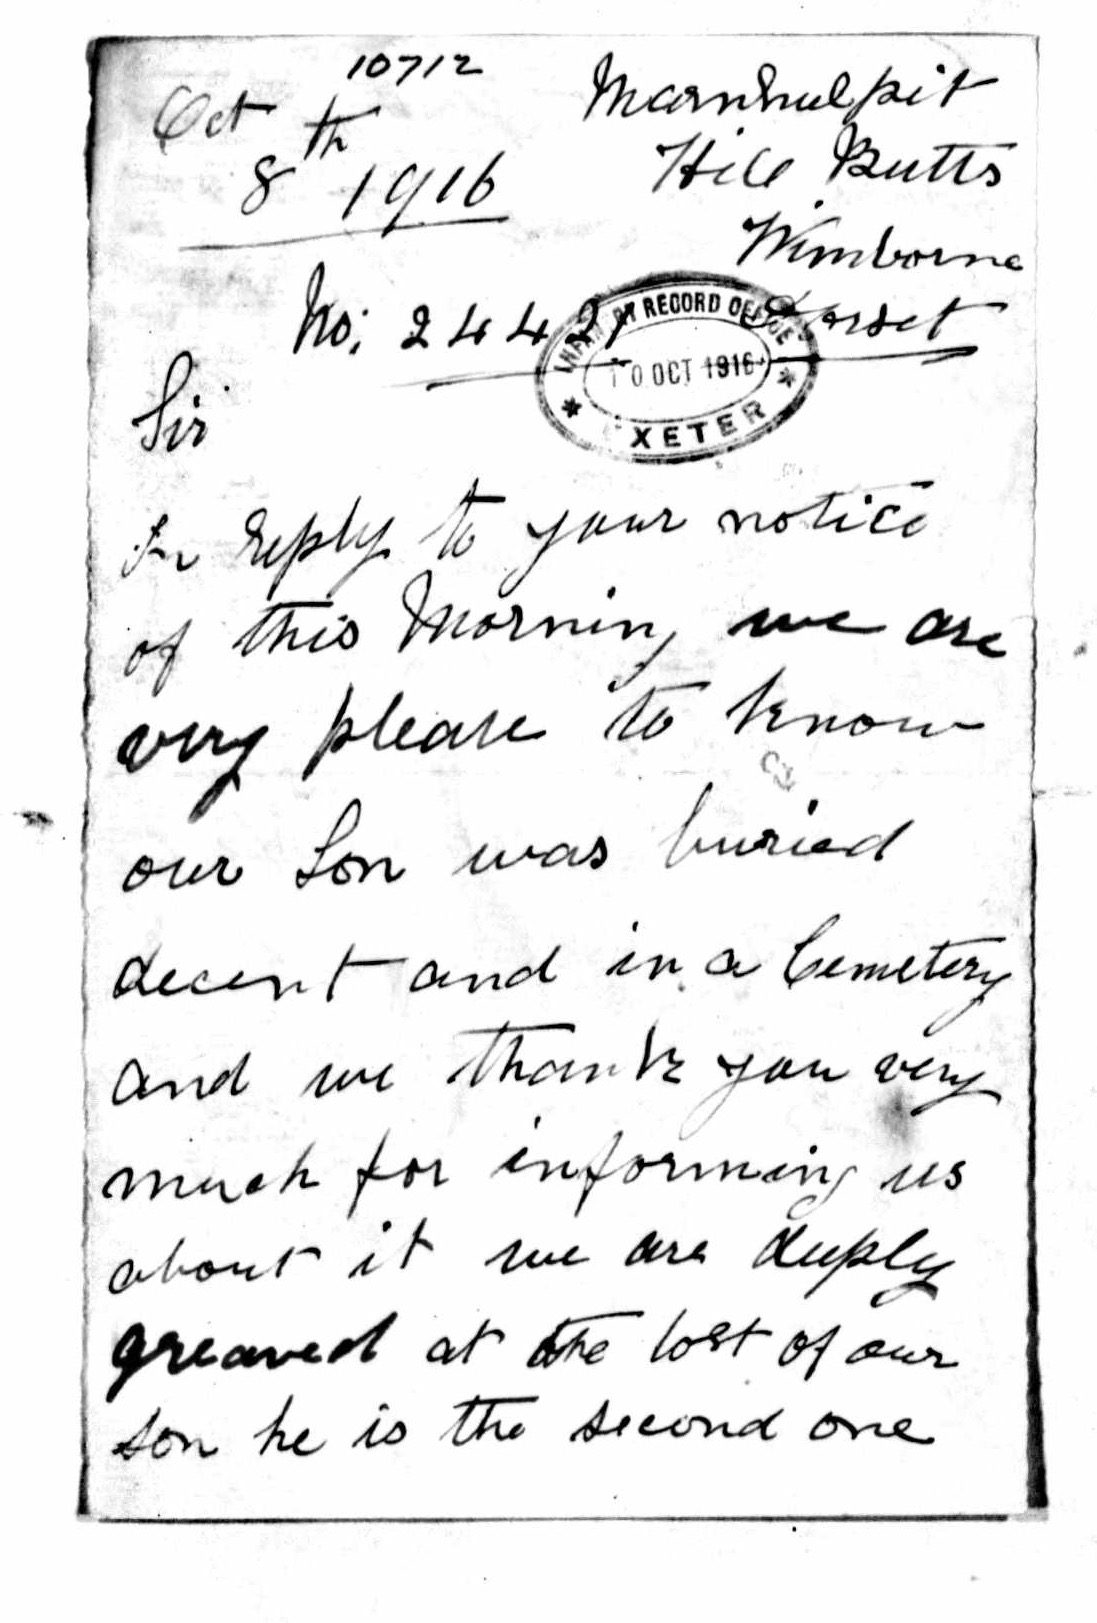 Letter from Bessie Angell to the War Office